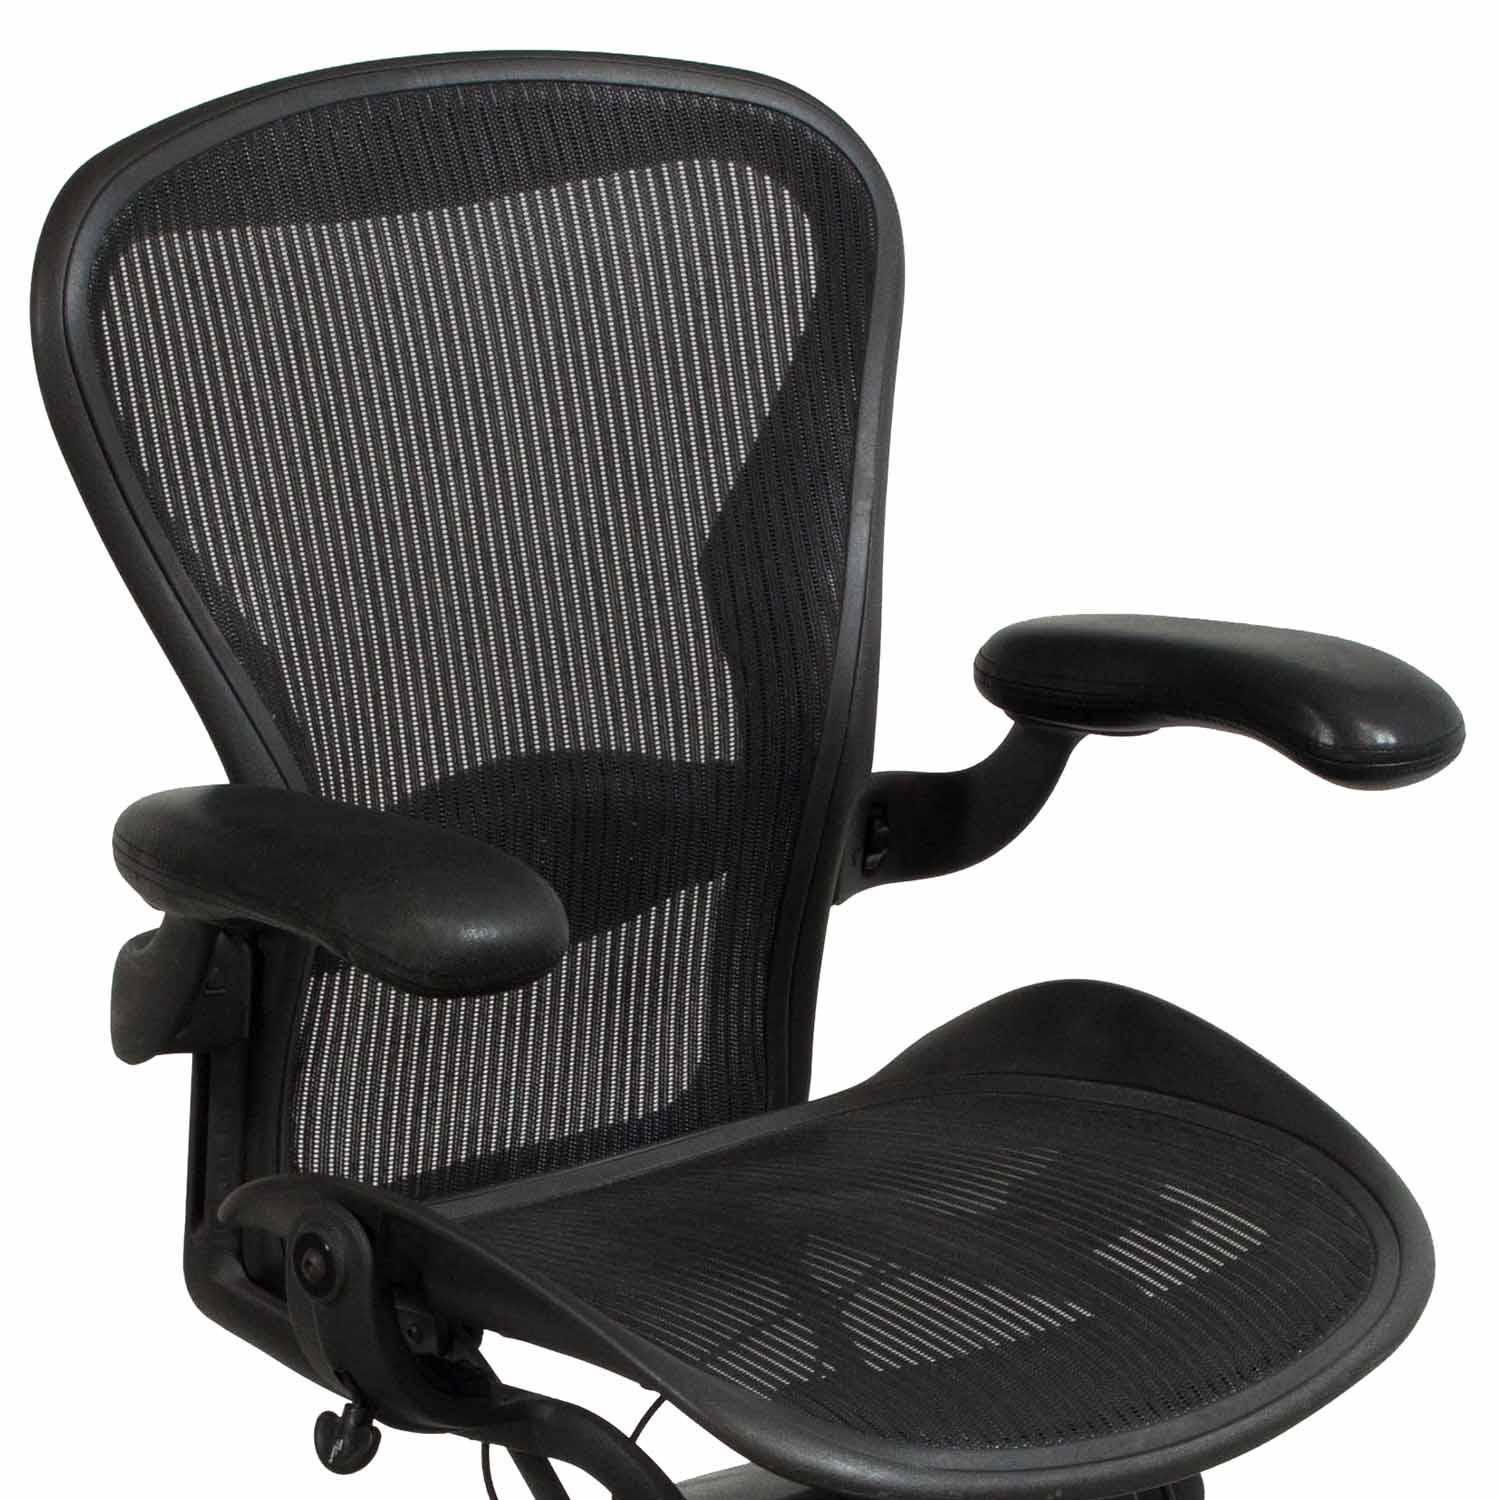 aeron chair accessories best outdoor rocking herman miller used size b leather arm task